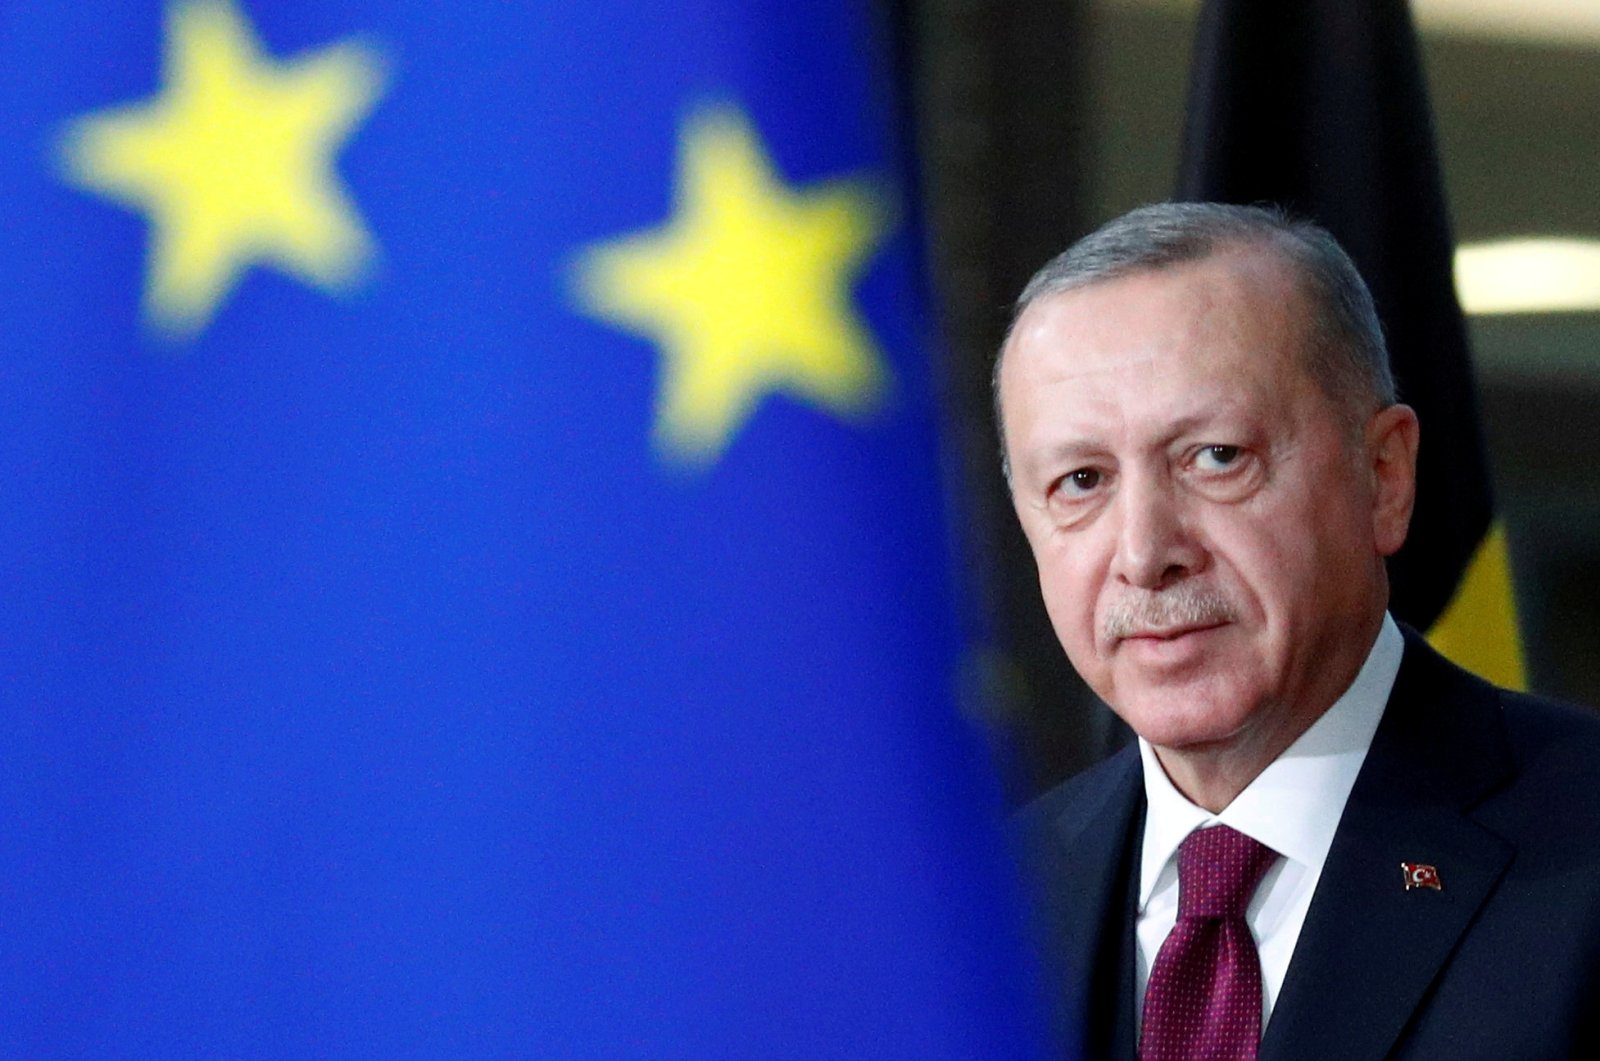 President Tayyip Erdoğan arrives for a meeting with European Council President Charles Michel in Brussels, Belgium, March 9, 2020. (Reuters Photo)